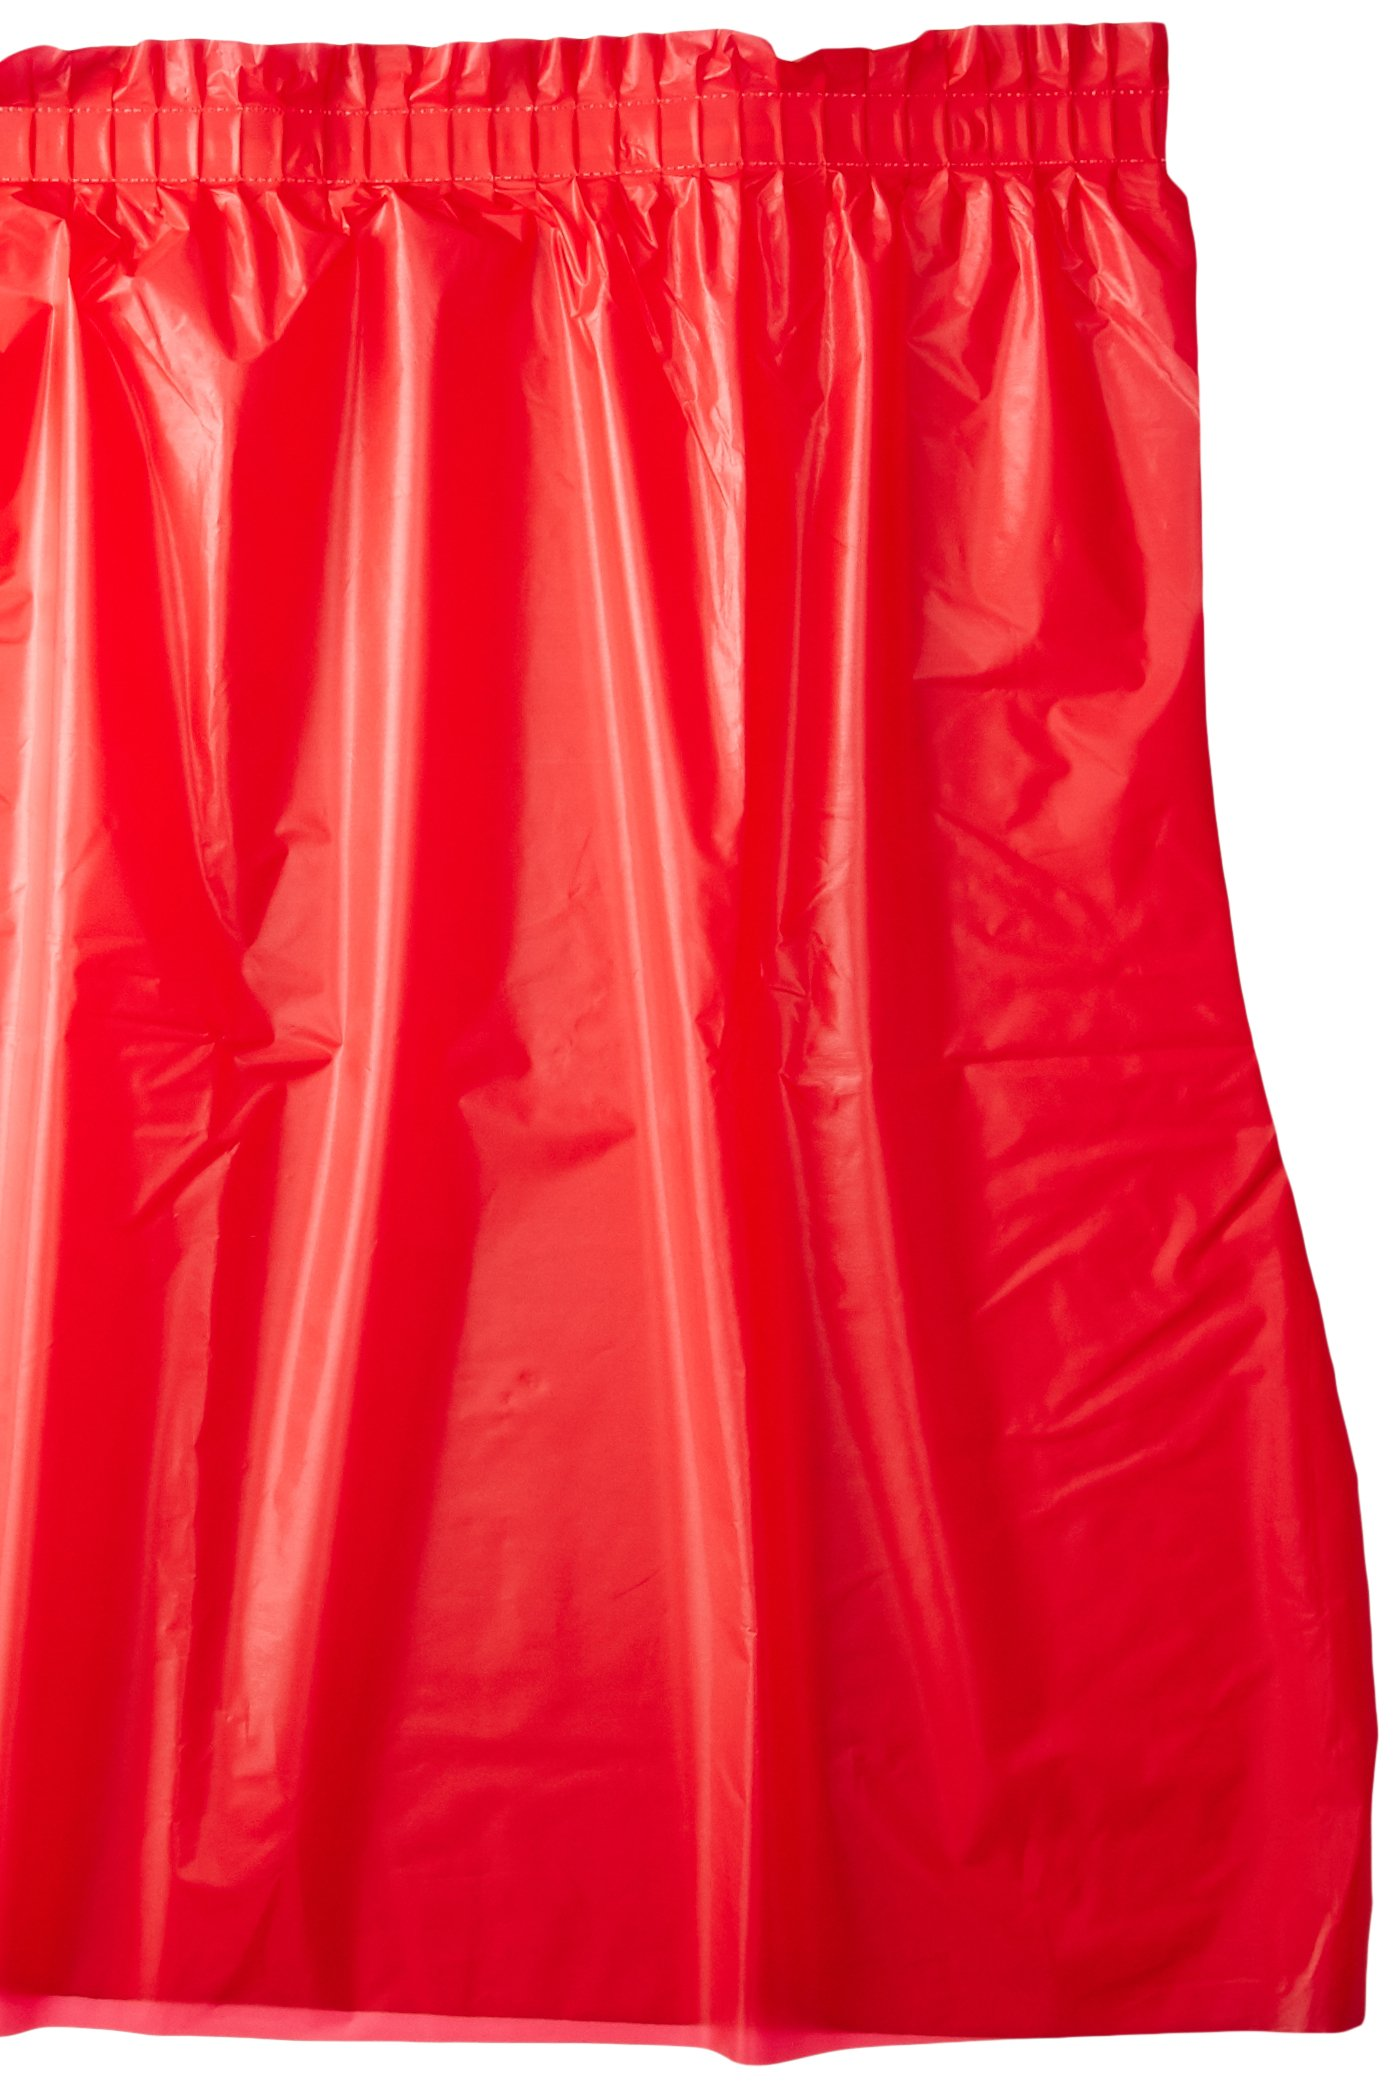 Creative Converting Plastic Table Skirt, 14-Feet, Classic Red by Creative Converting (Image #1)